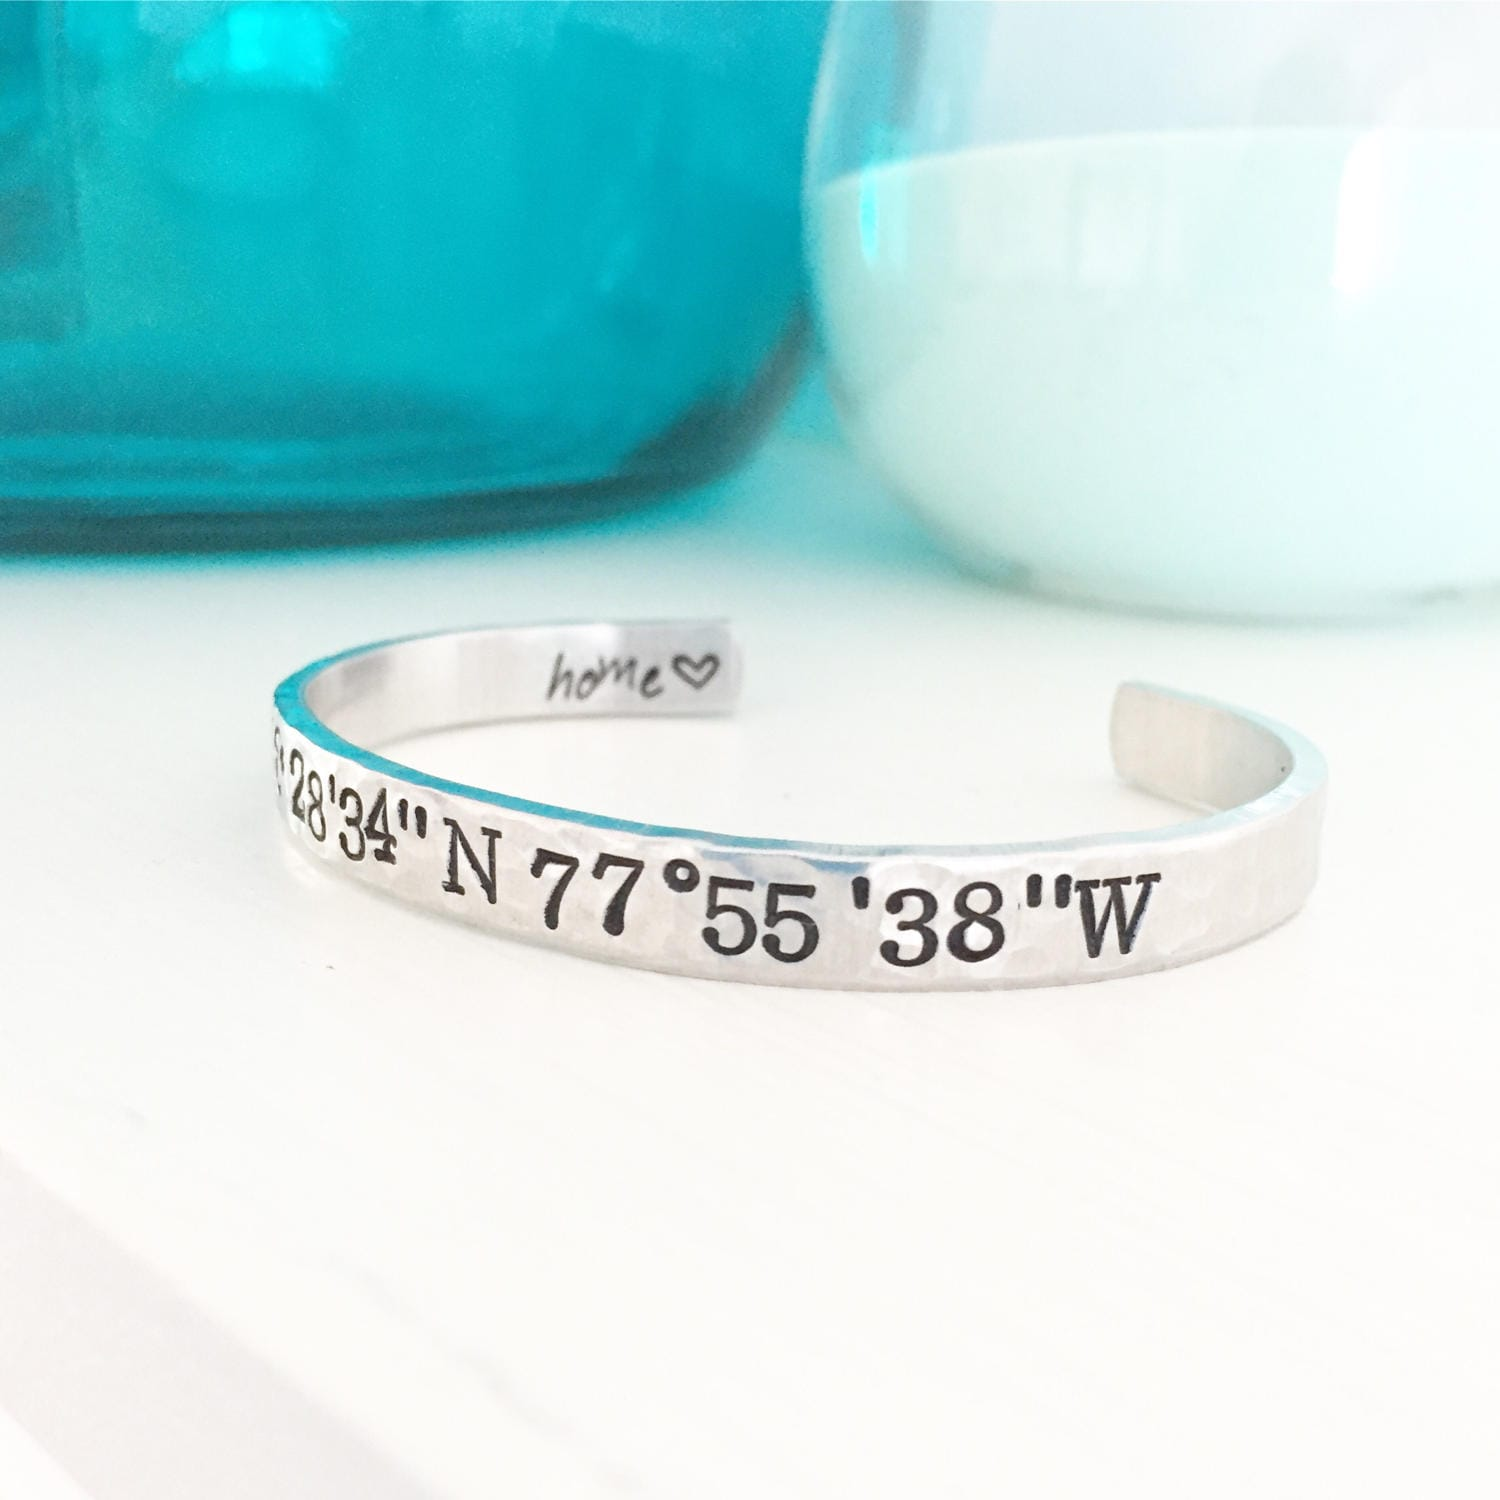 words star coordinate product bracelet latitude jewelry personalized aluminum song long a cuff you inspired wish longitude upon when stamped hand disney lat theme